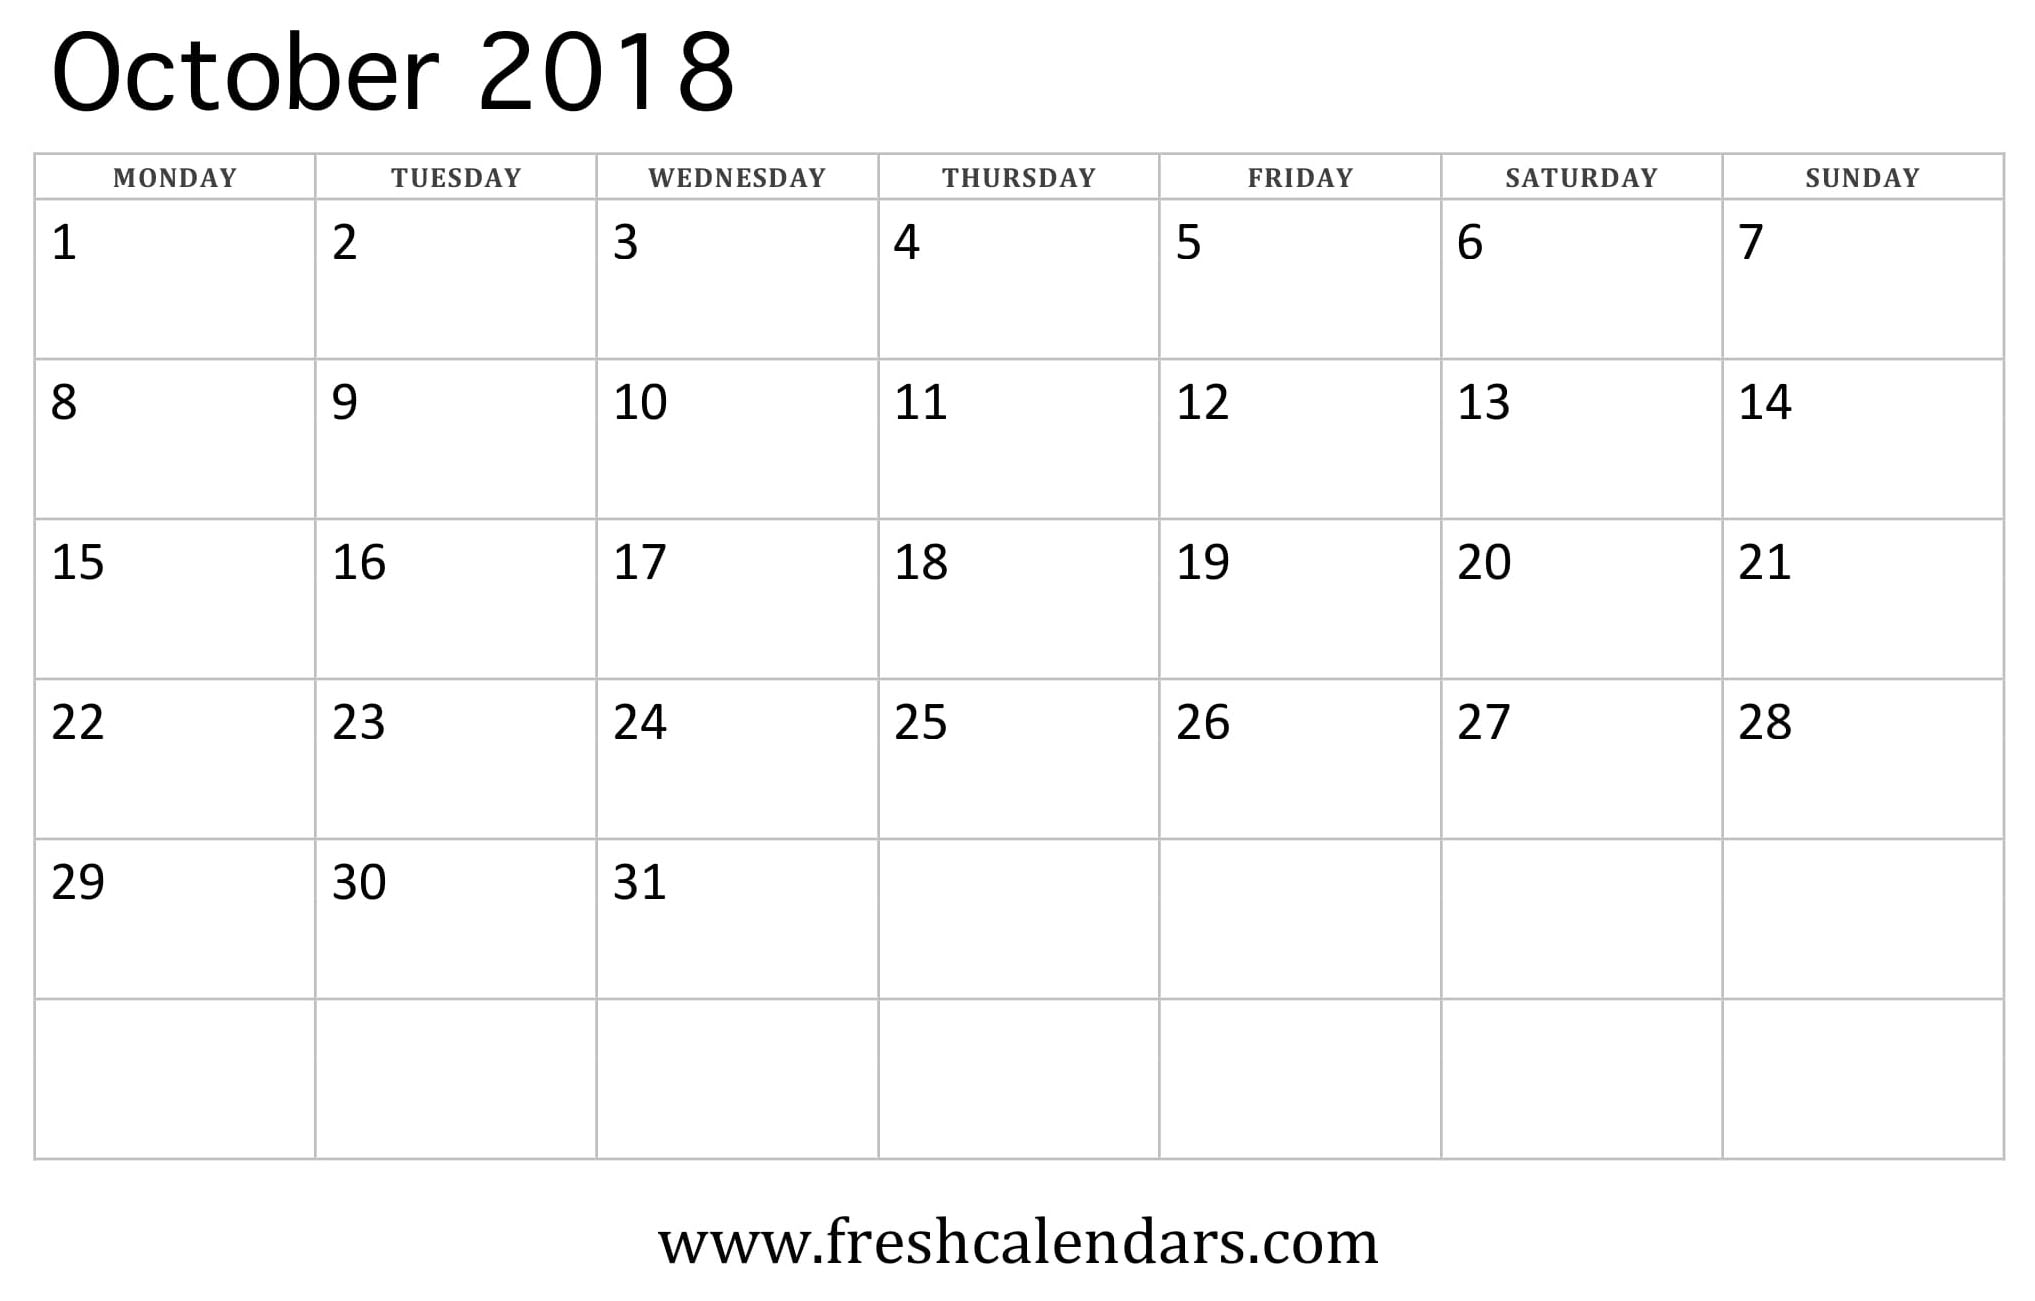 October 2018 Calendar (week starts on monday)